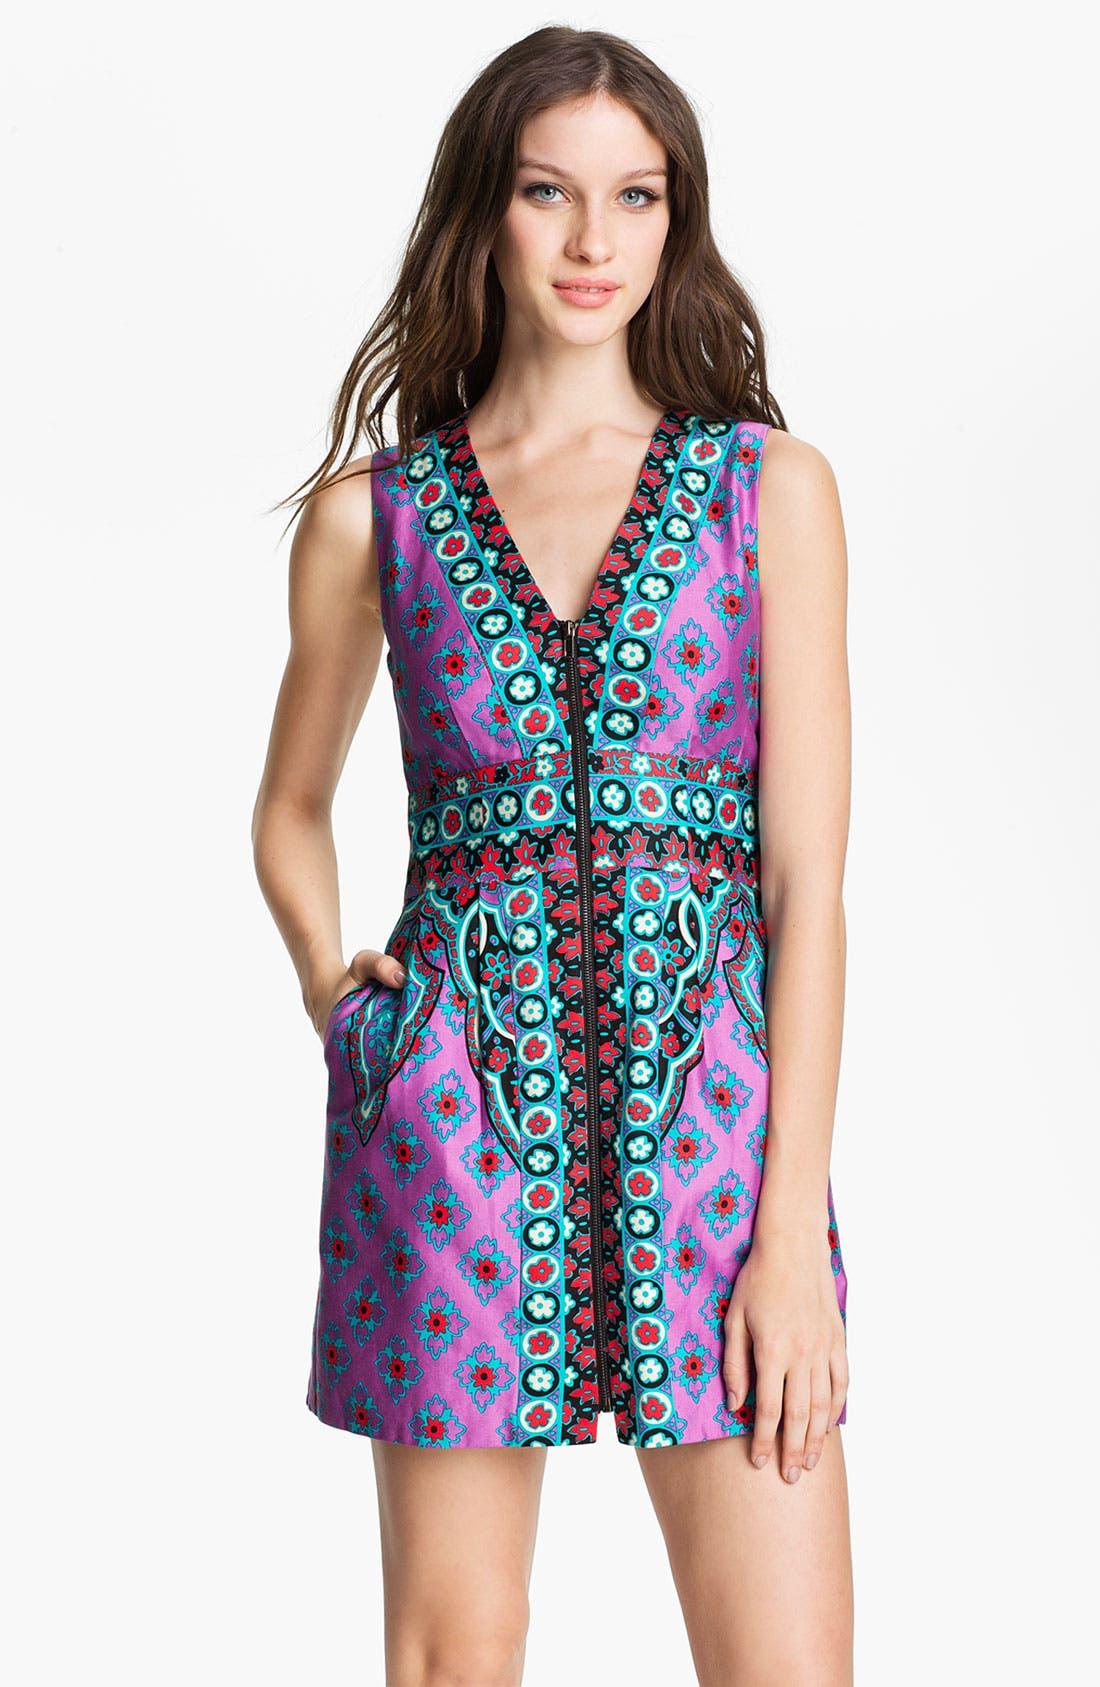 Alternate Image 1 Selected - Nanette Lepore 'Funkadelic' Stretch Cotton Sheath Dress